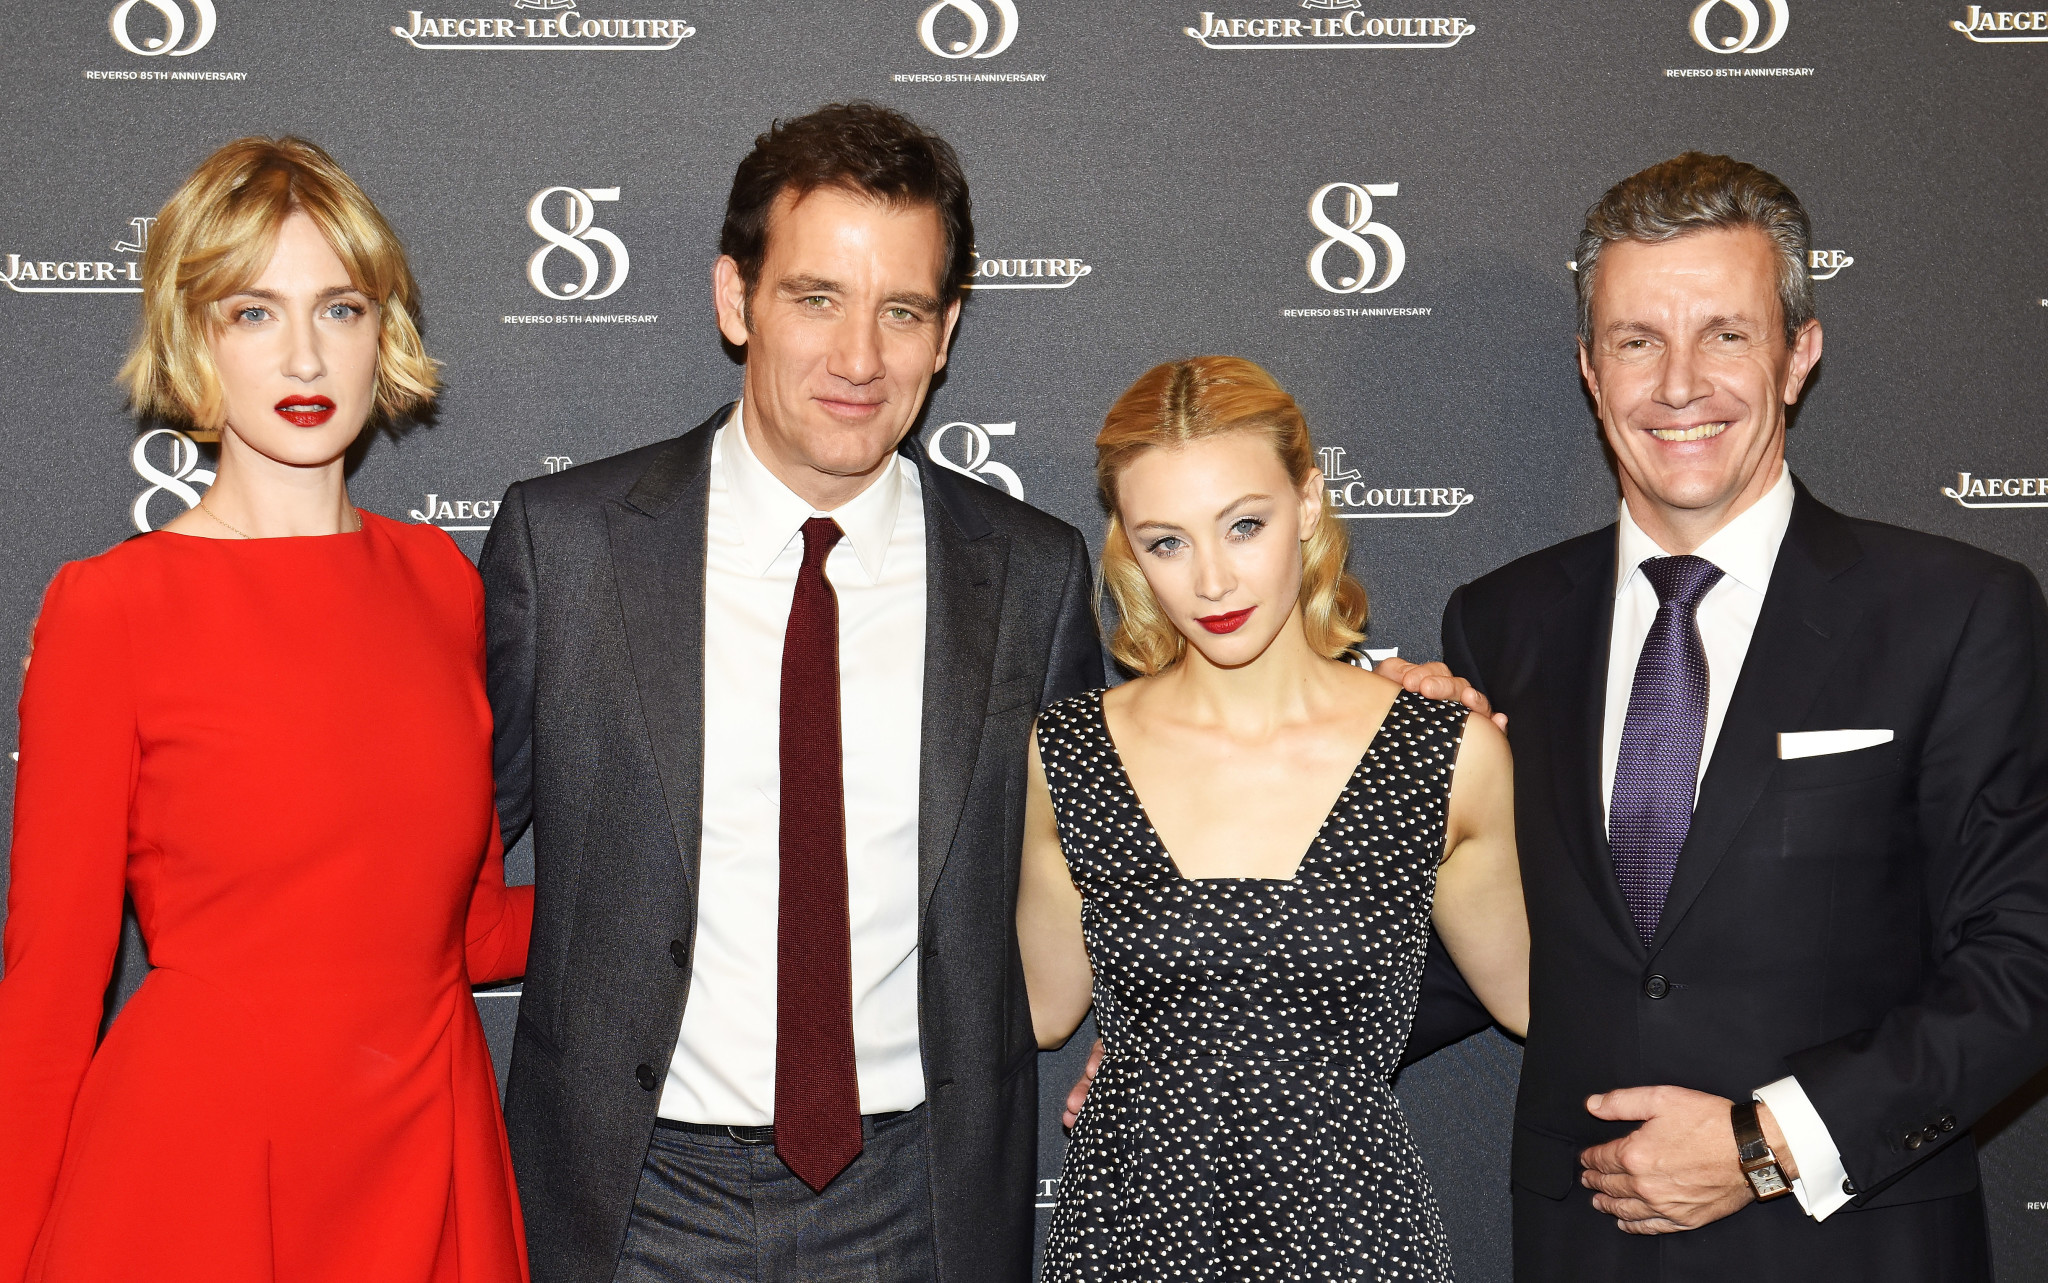 A Year In tribute to The Reverso Hosted by Jaeger-LeCoultre – Reception